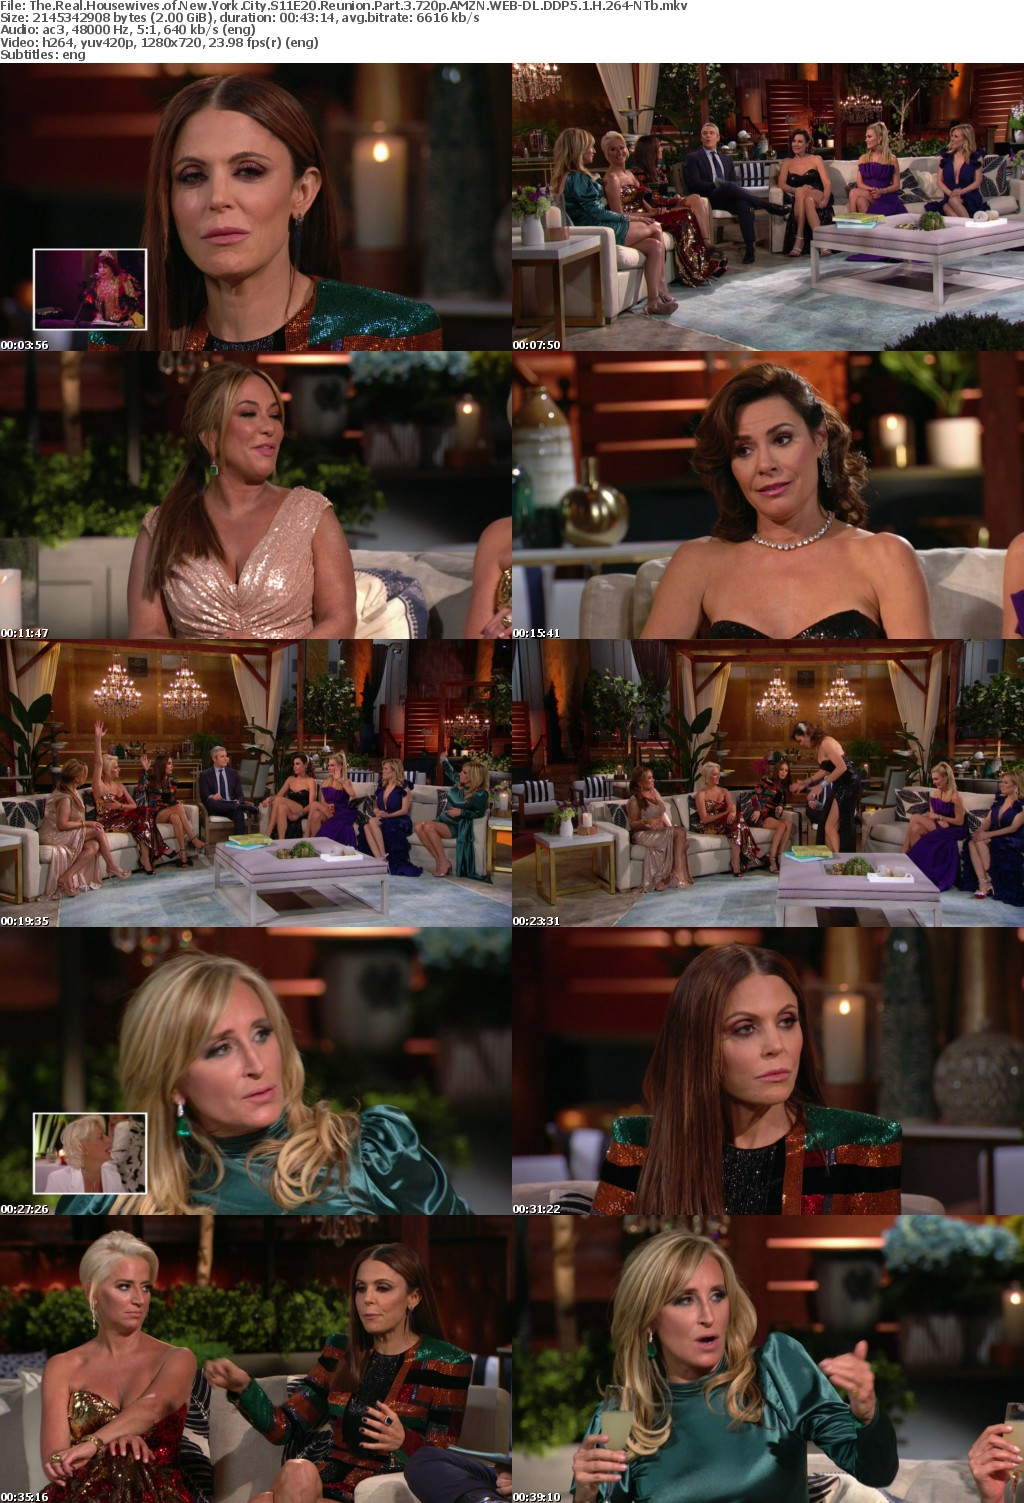 The Real Housewives of New York City S11E20 Reunion Part 3 720p AMZN WEB-DL DDP5 1 H 264-NTb